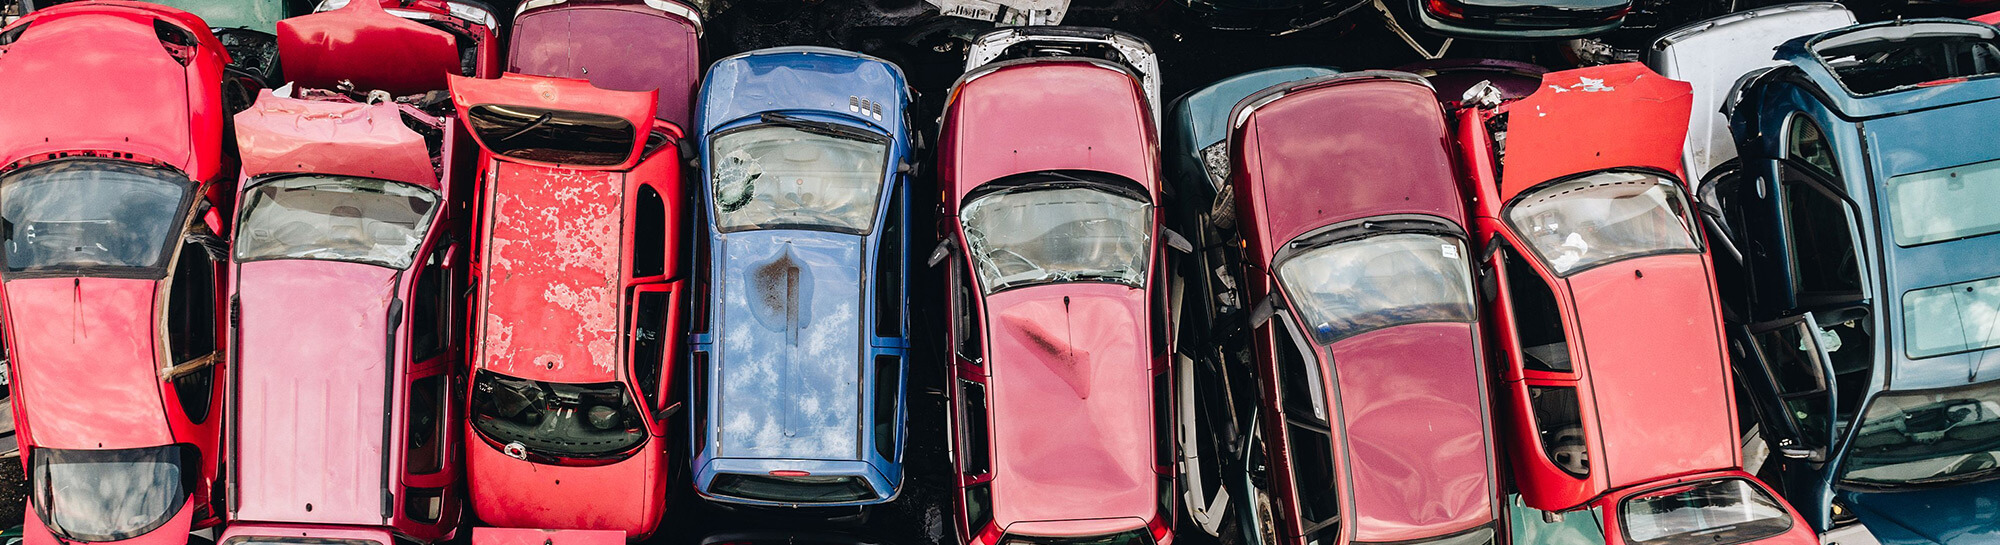 Aerial photo of rows of scrapped cars, trucks and vans